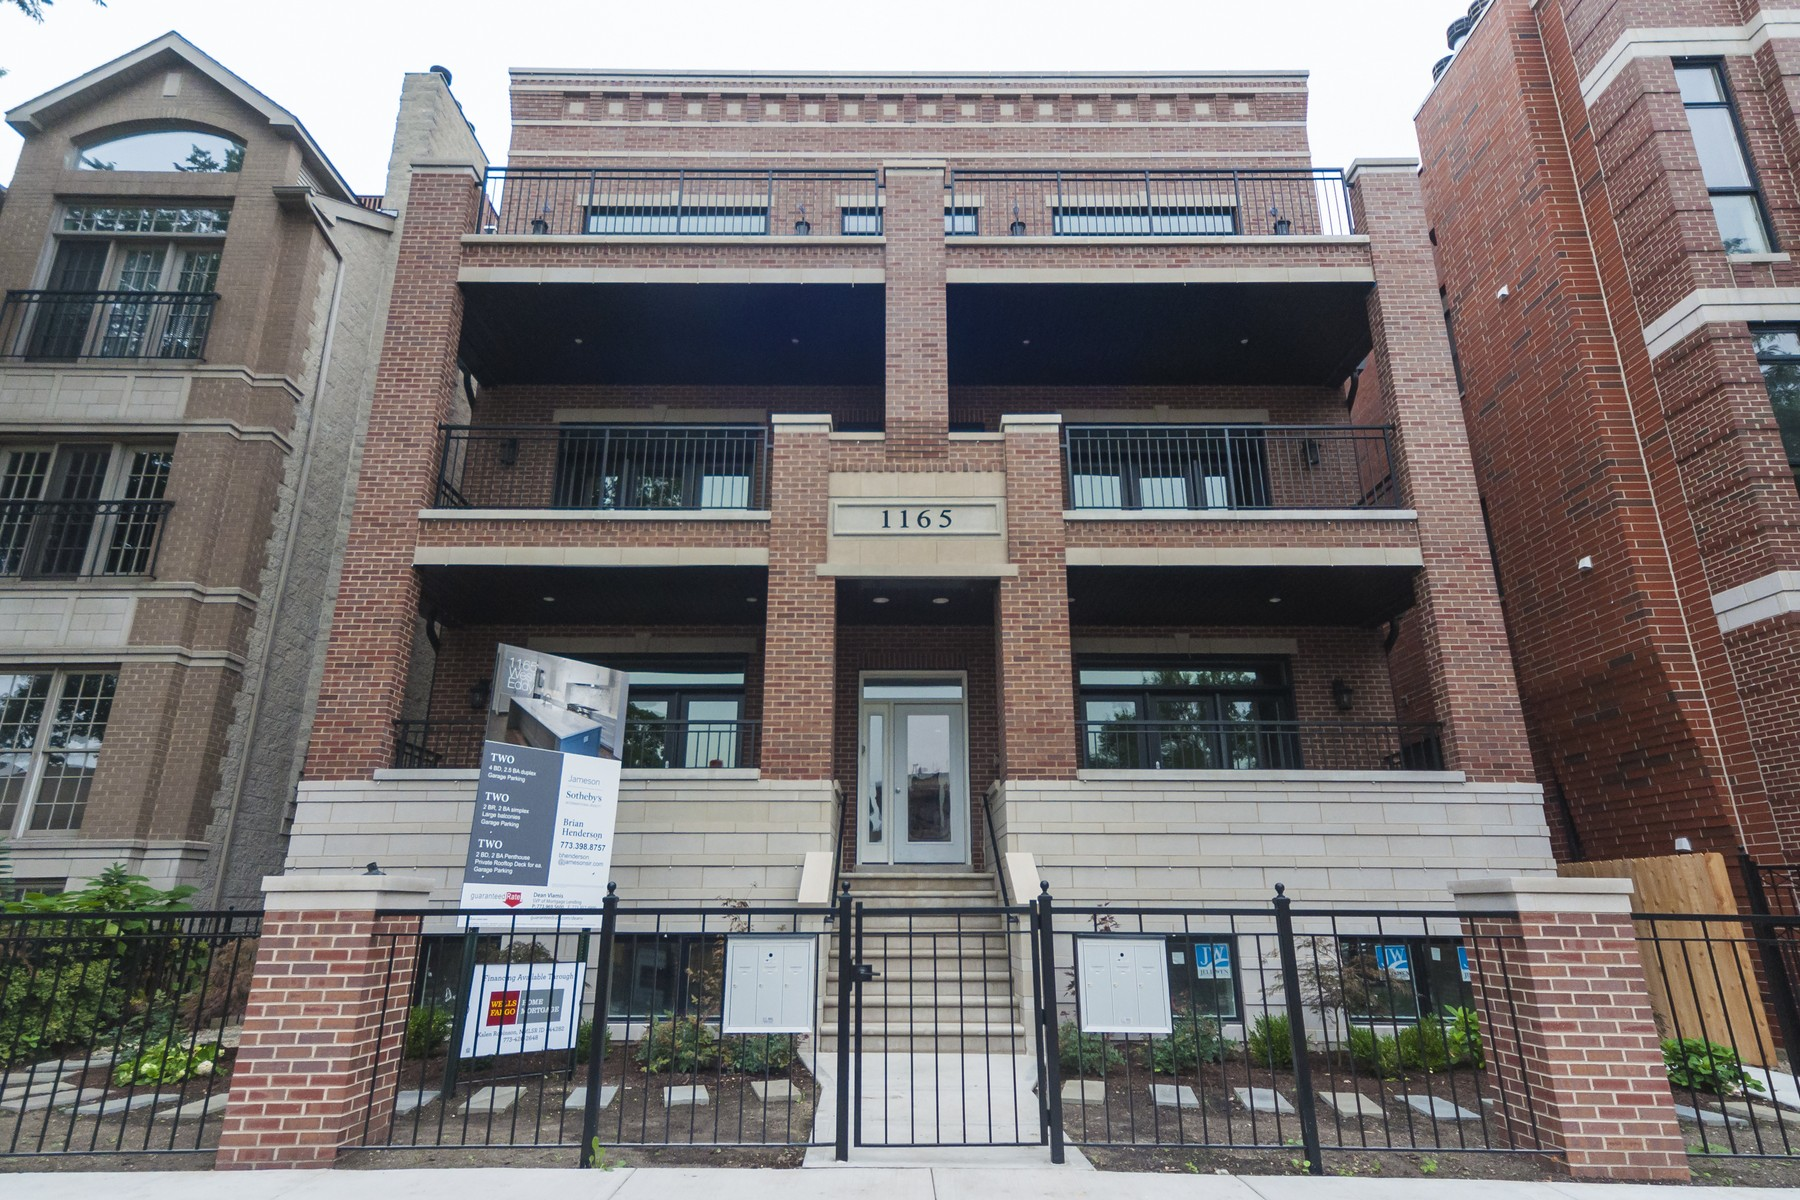 Duplex for Sale at Elegant All Brick New Construction Condo 1165 W Eddy Street Unit 1W Lakeview, Chicago, Illinois 60657 United States